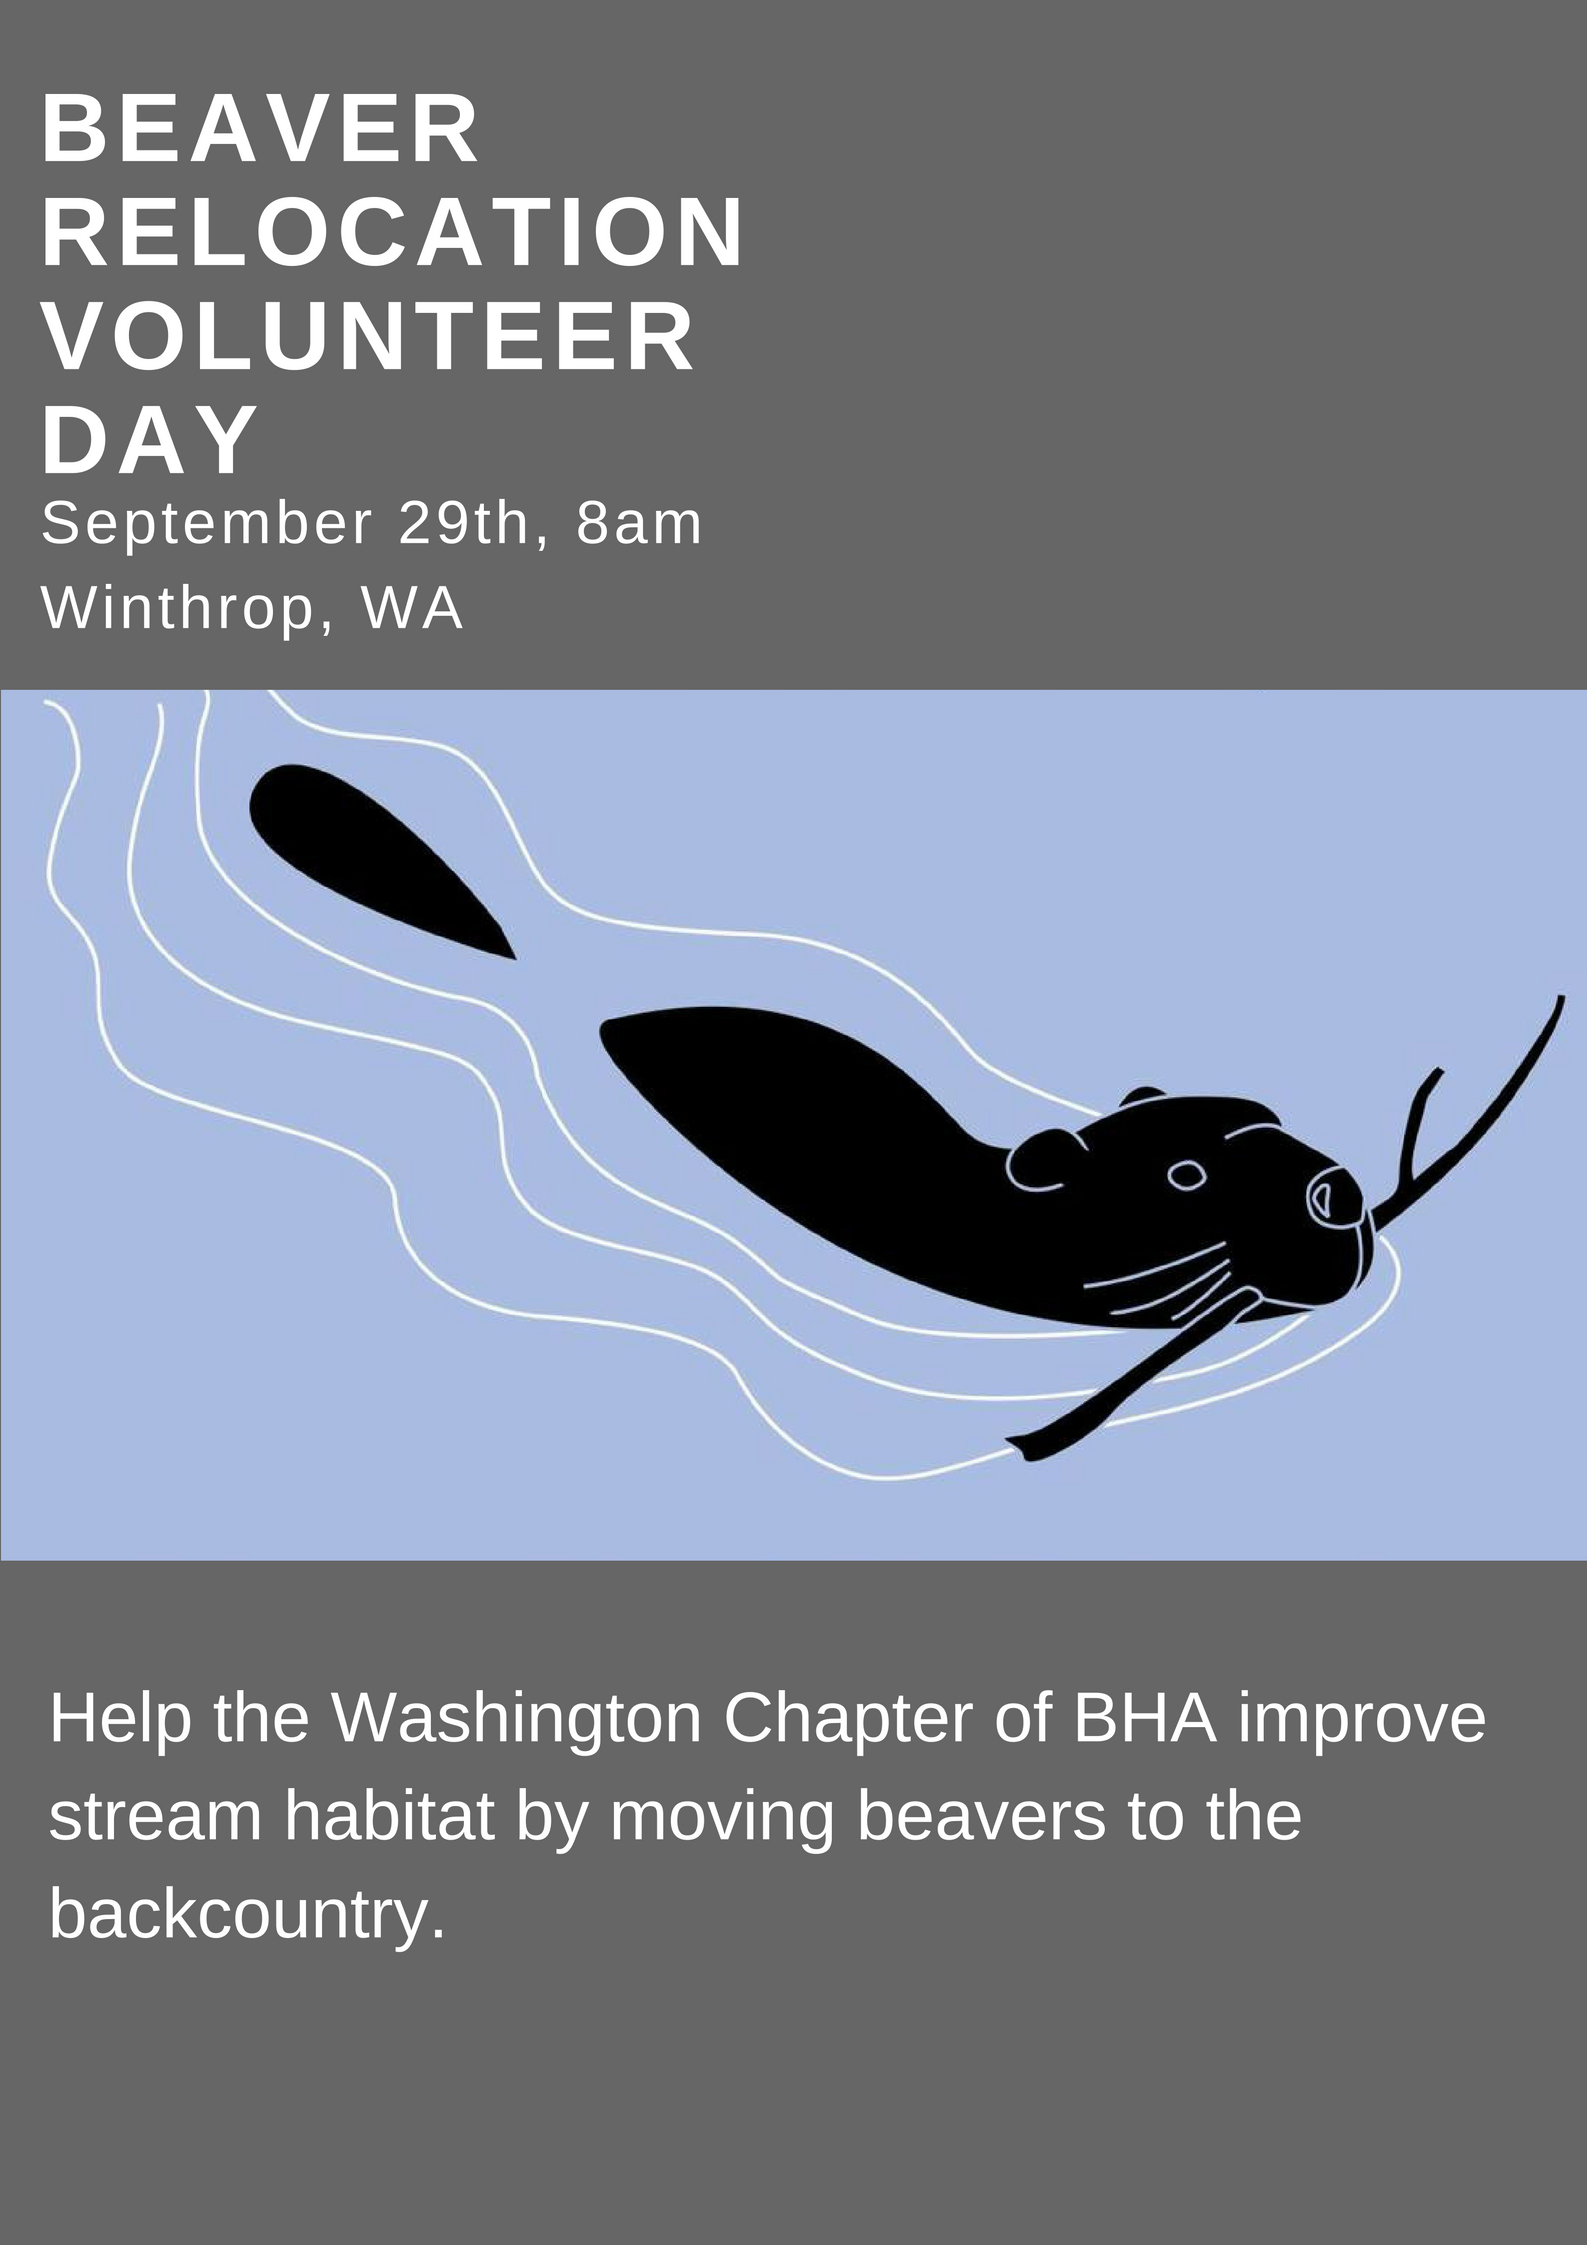 Beaver_Relocation_Volunteer_Day.jpg